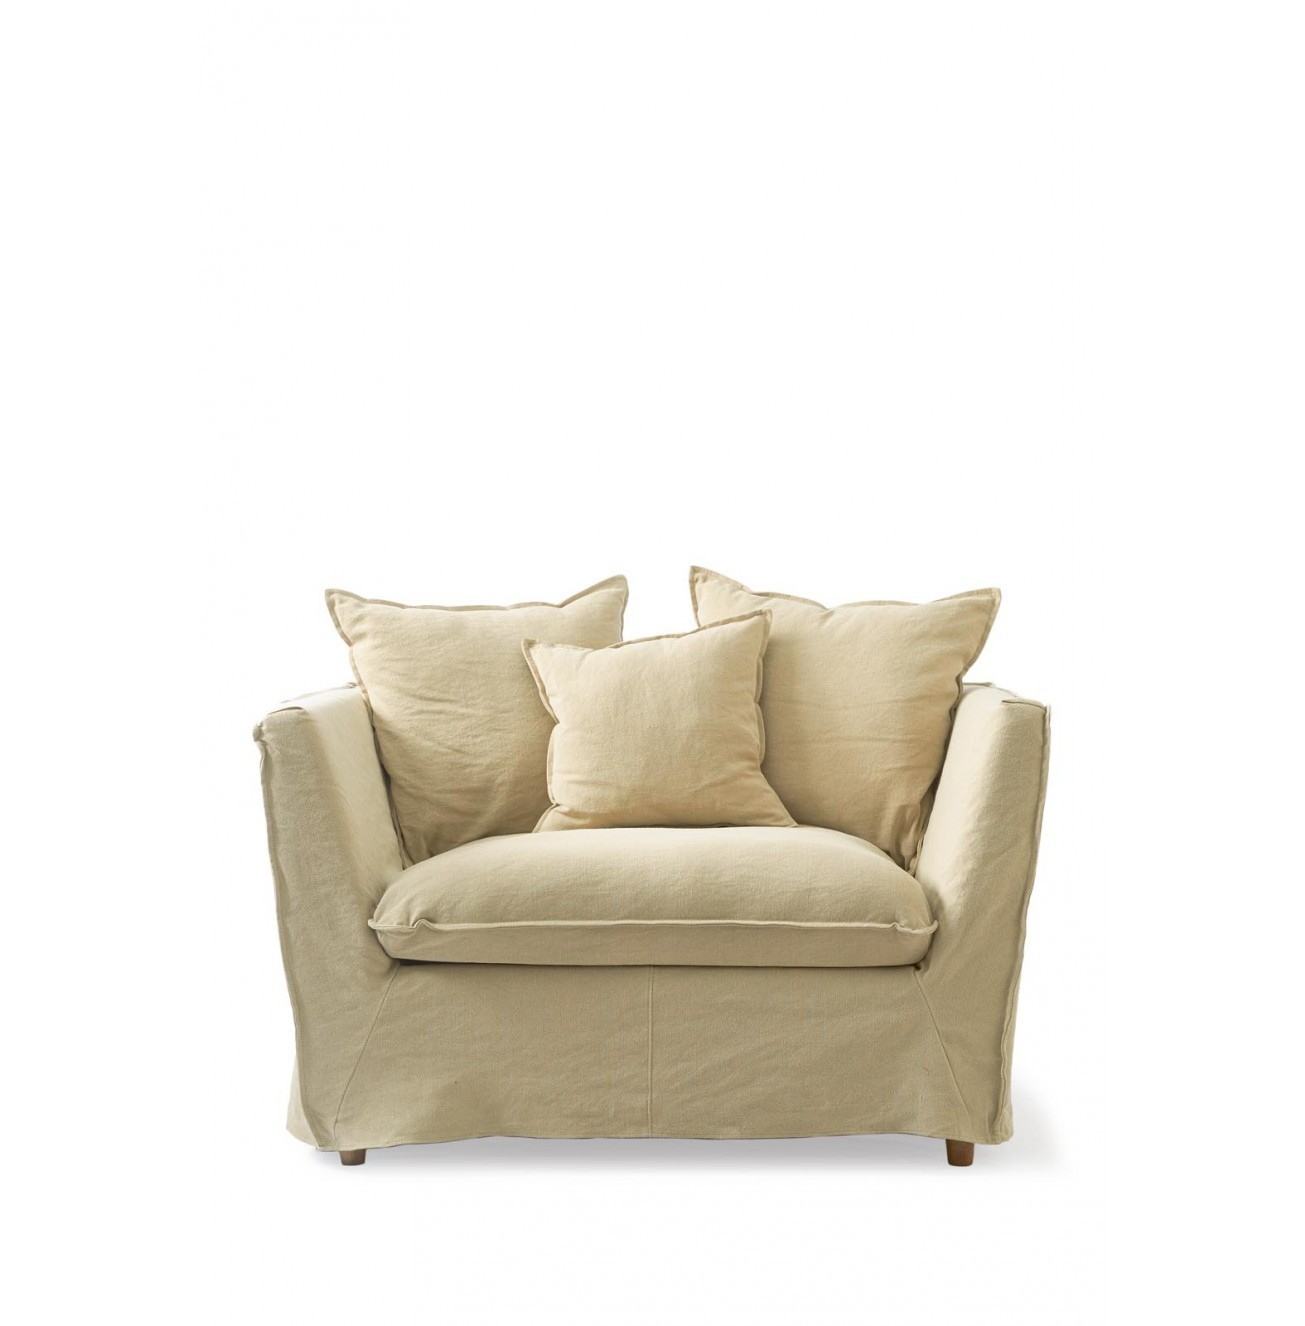 best riviera maison oyster pond love seat washed linen flax felicity and friends with riviera maison bank sale